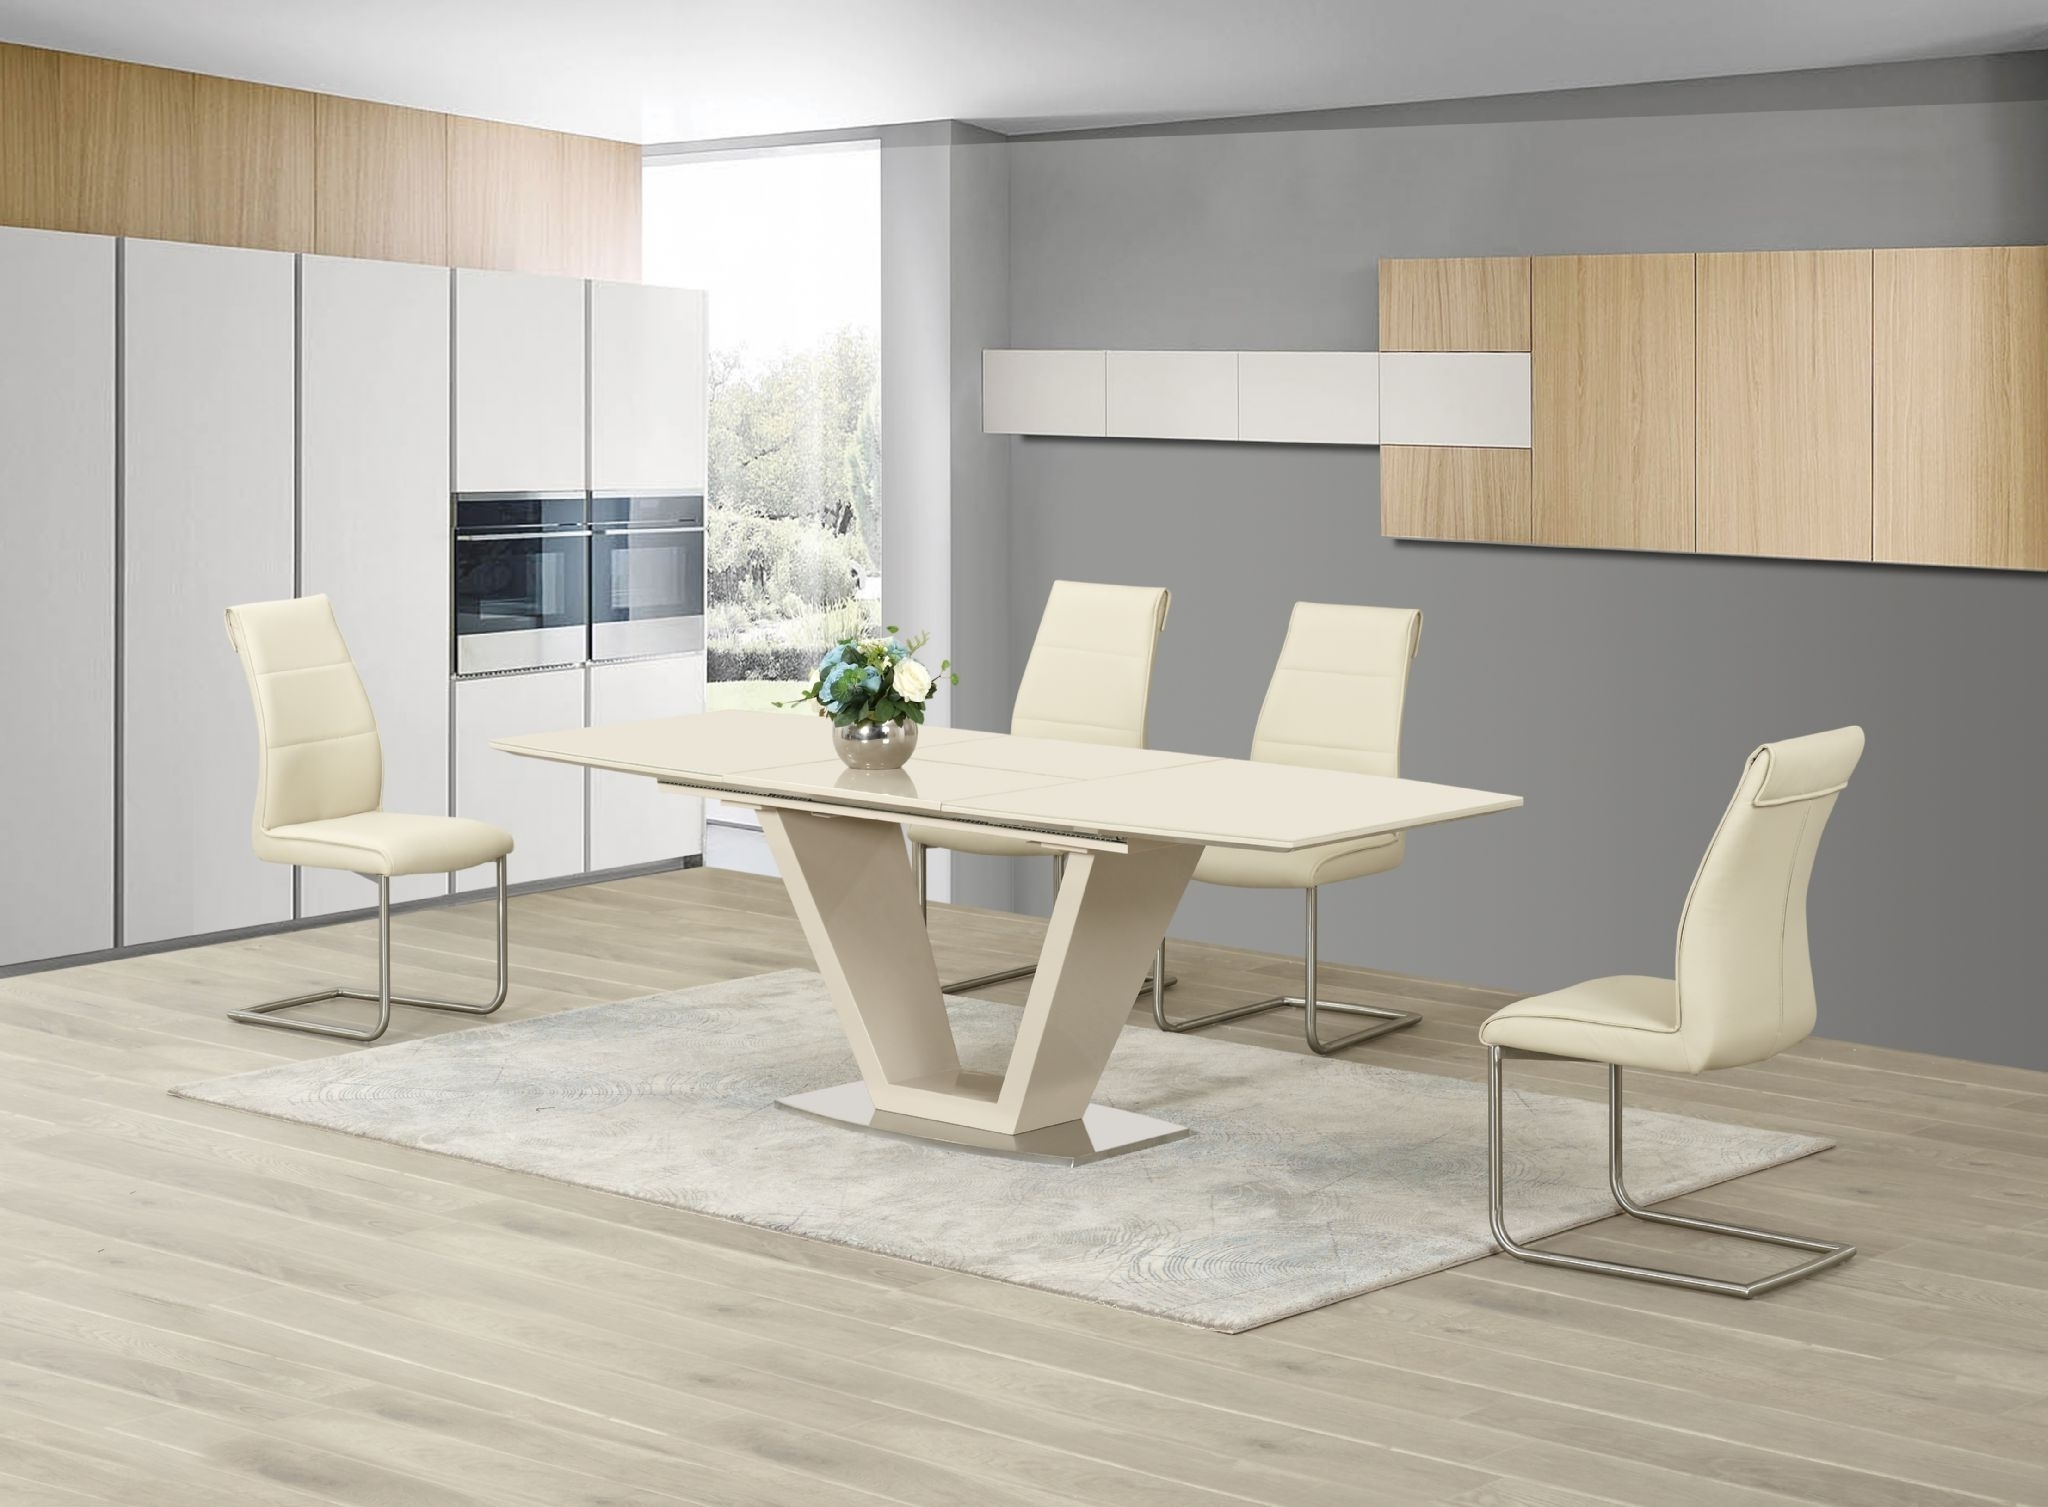 Black Gloss Dining Tables And 6 Chairs Pertaining To Favorite Ga Loriga Cream Gloss Glass Designer Dining Table Extending 160  (View 24 of 25)